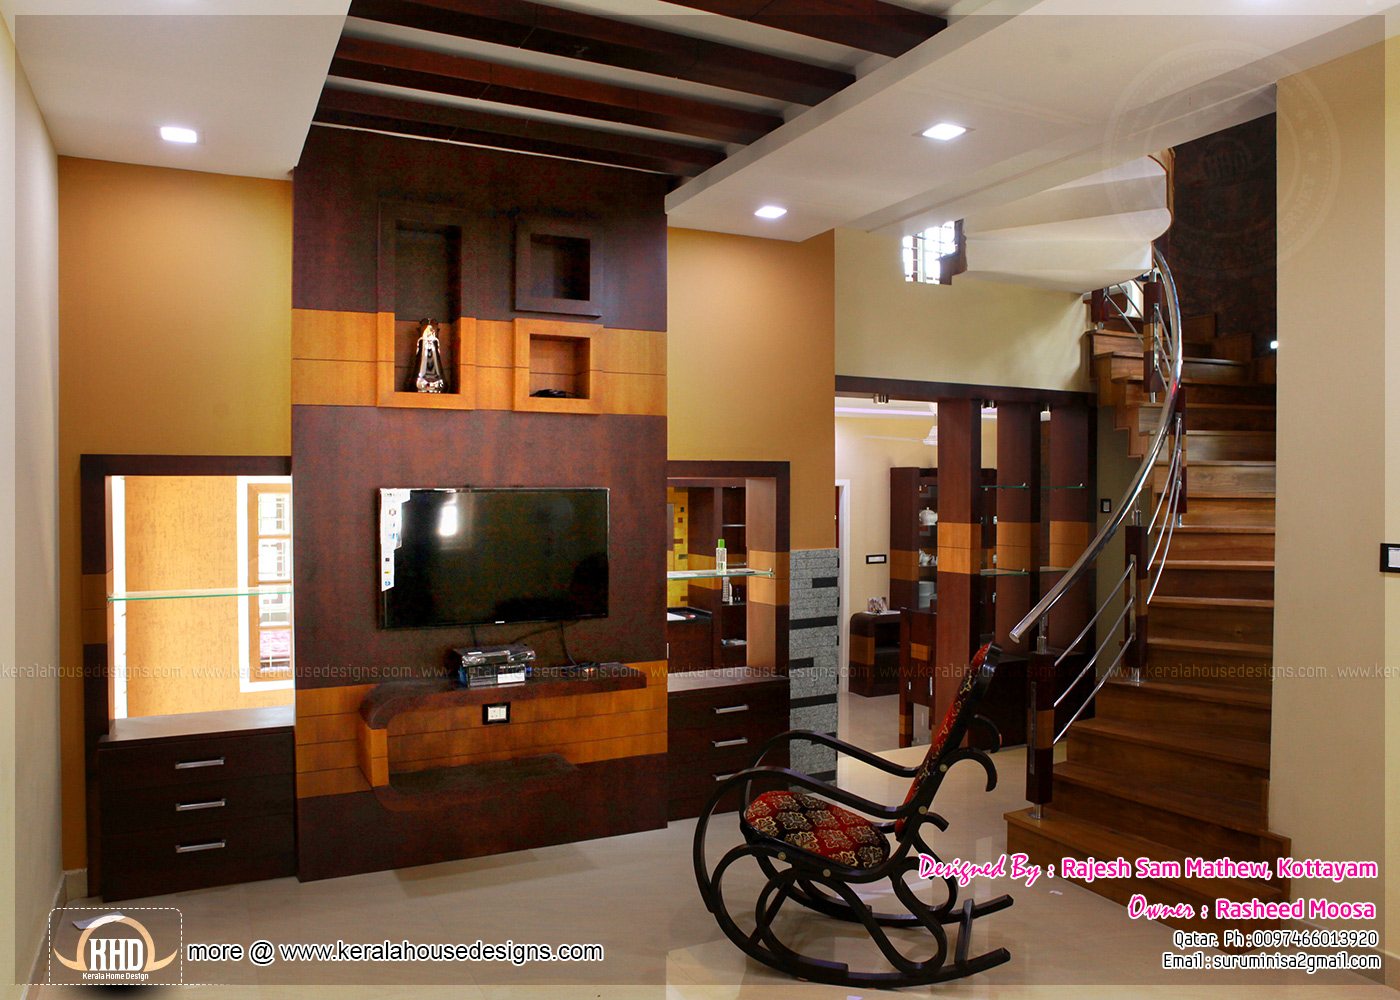 Kerala interior design with photos kerala home design for Good interior design websites